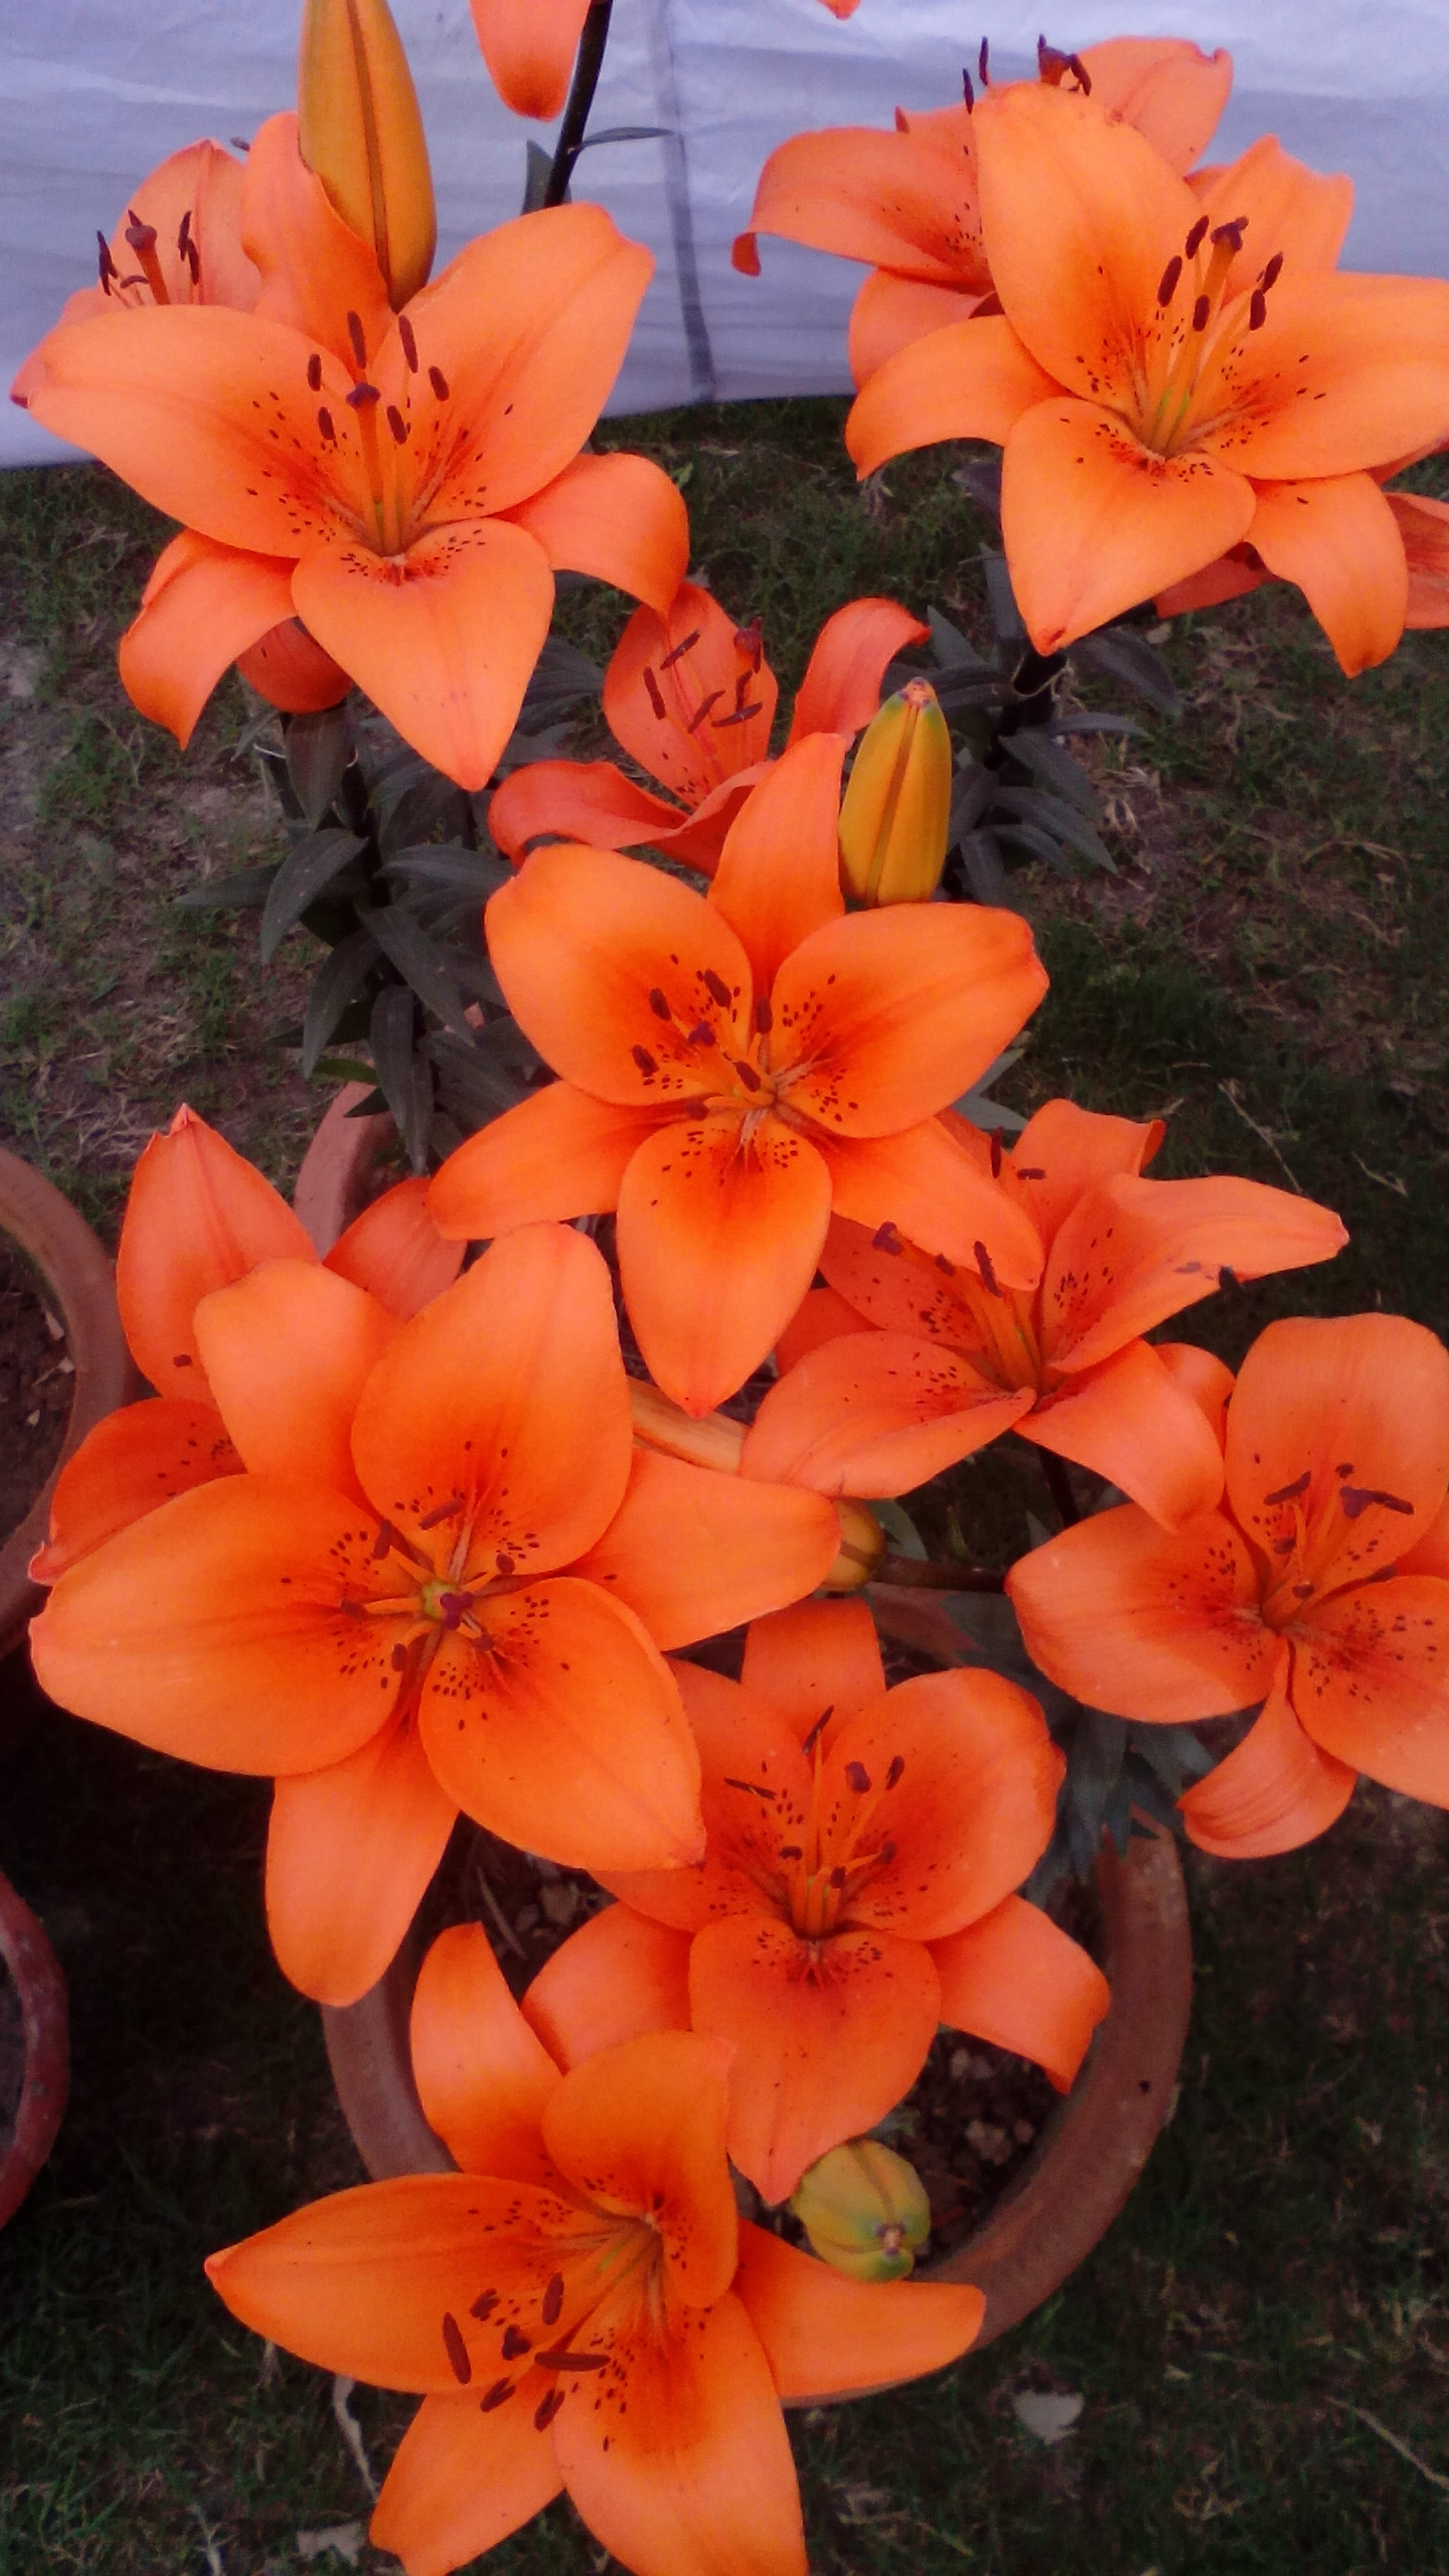 Liliums_asiatic_Orange bulbs India